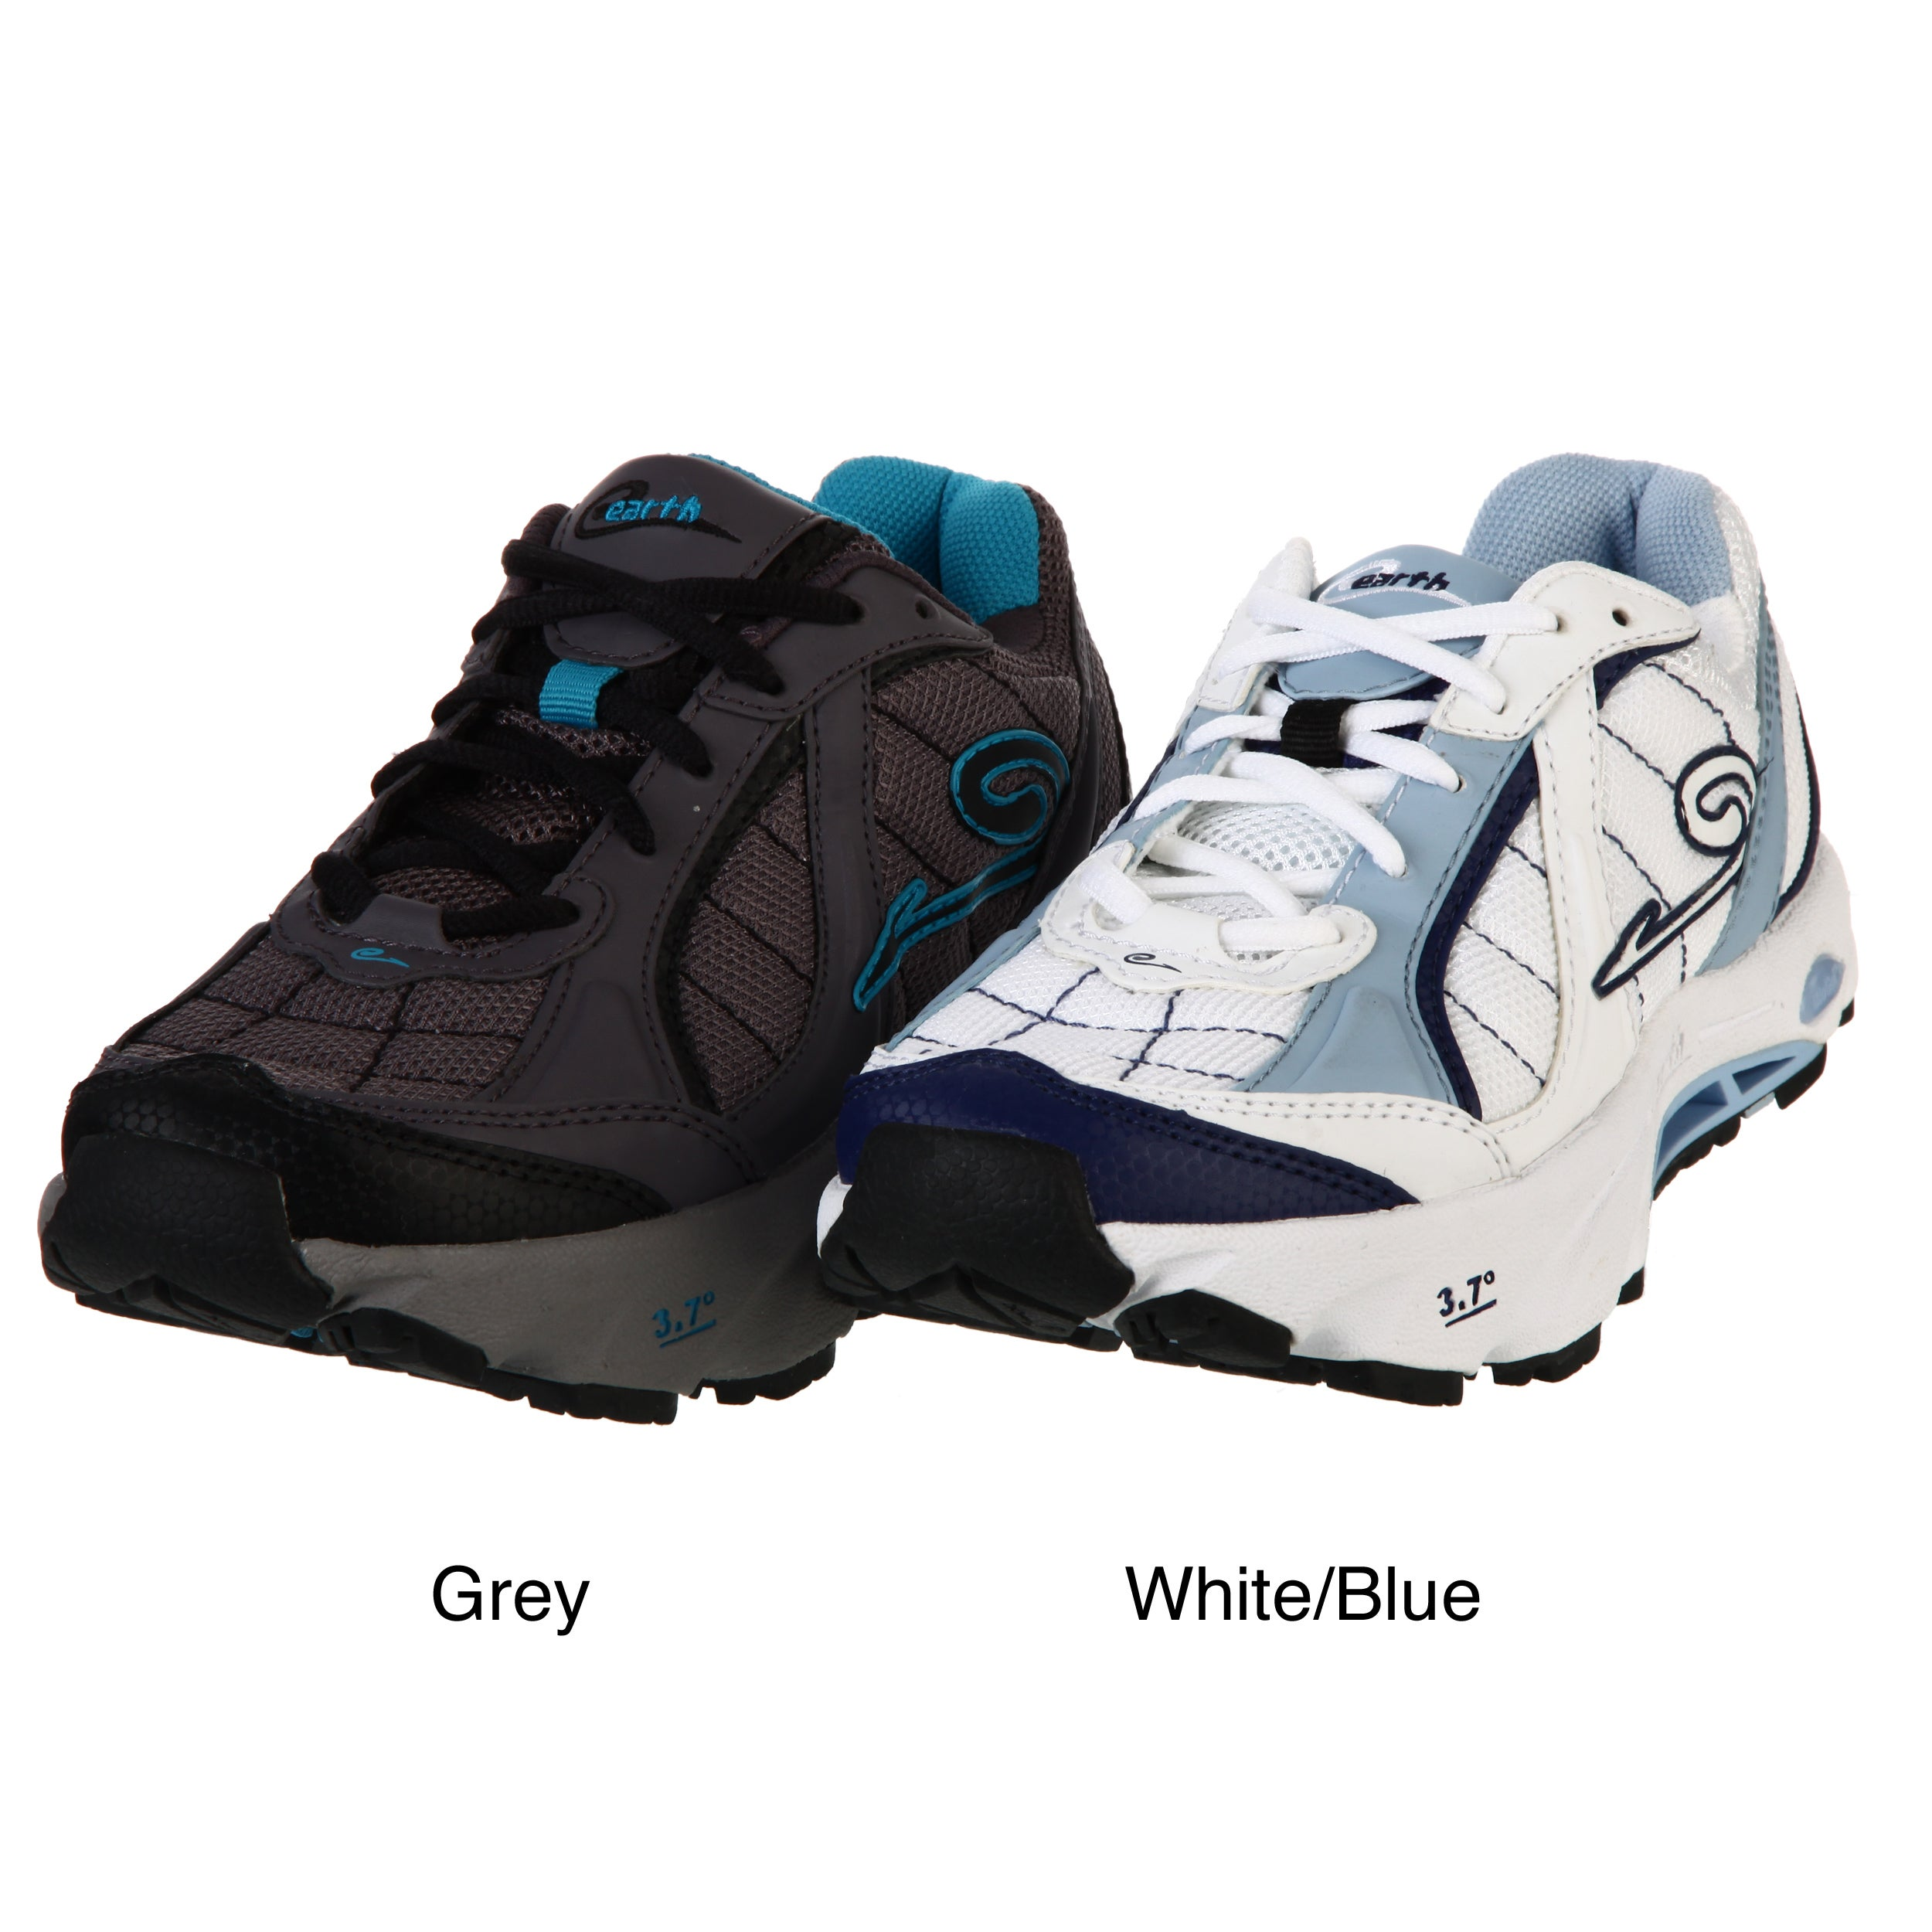 Hot Sale New women 9 Elite Basketball Shoes IX womens girls athletic Shoes Sports Sneakers For